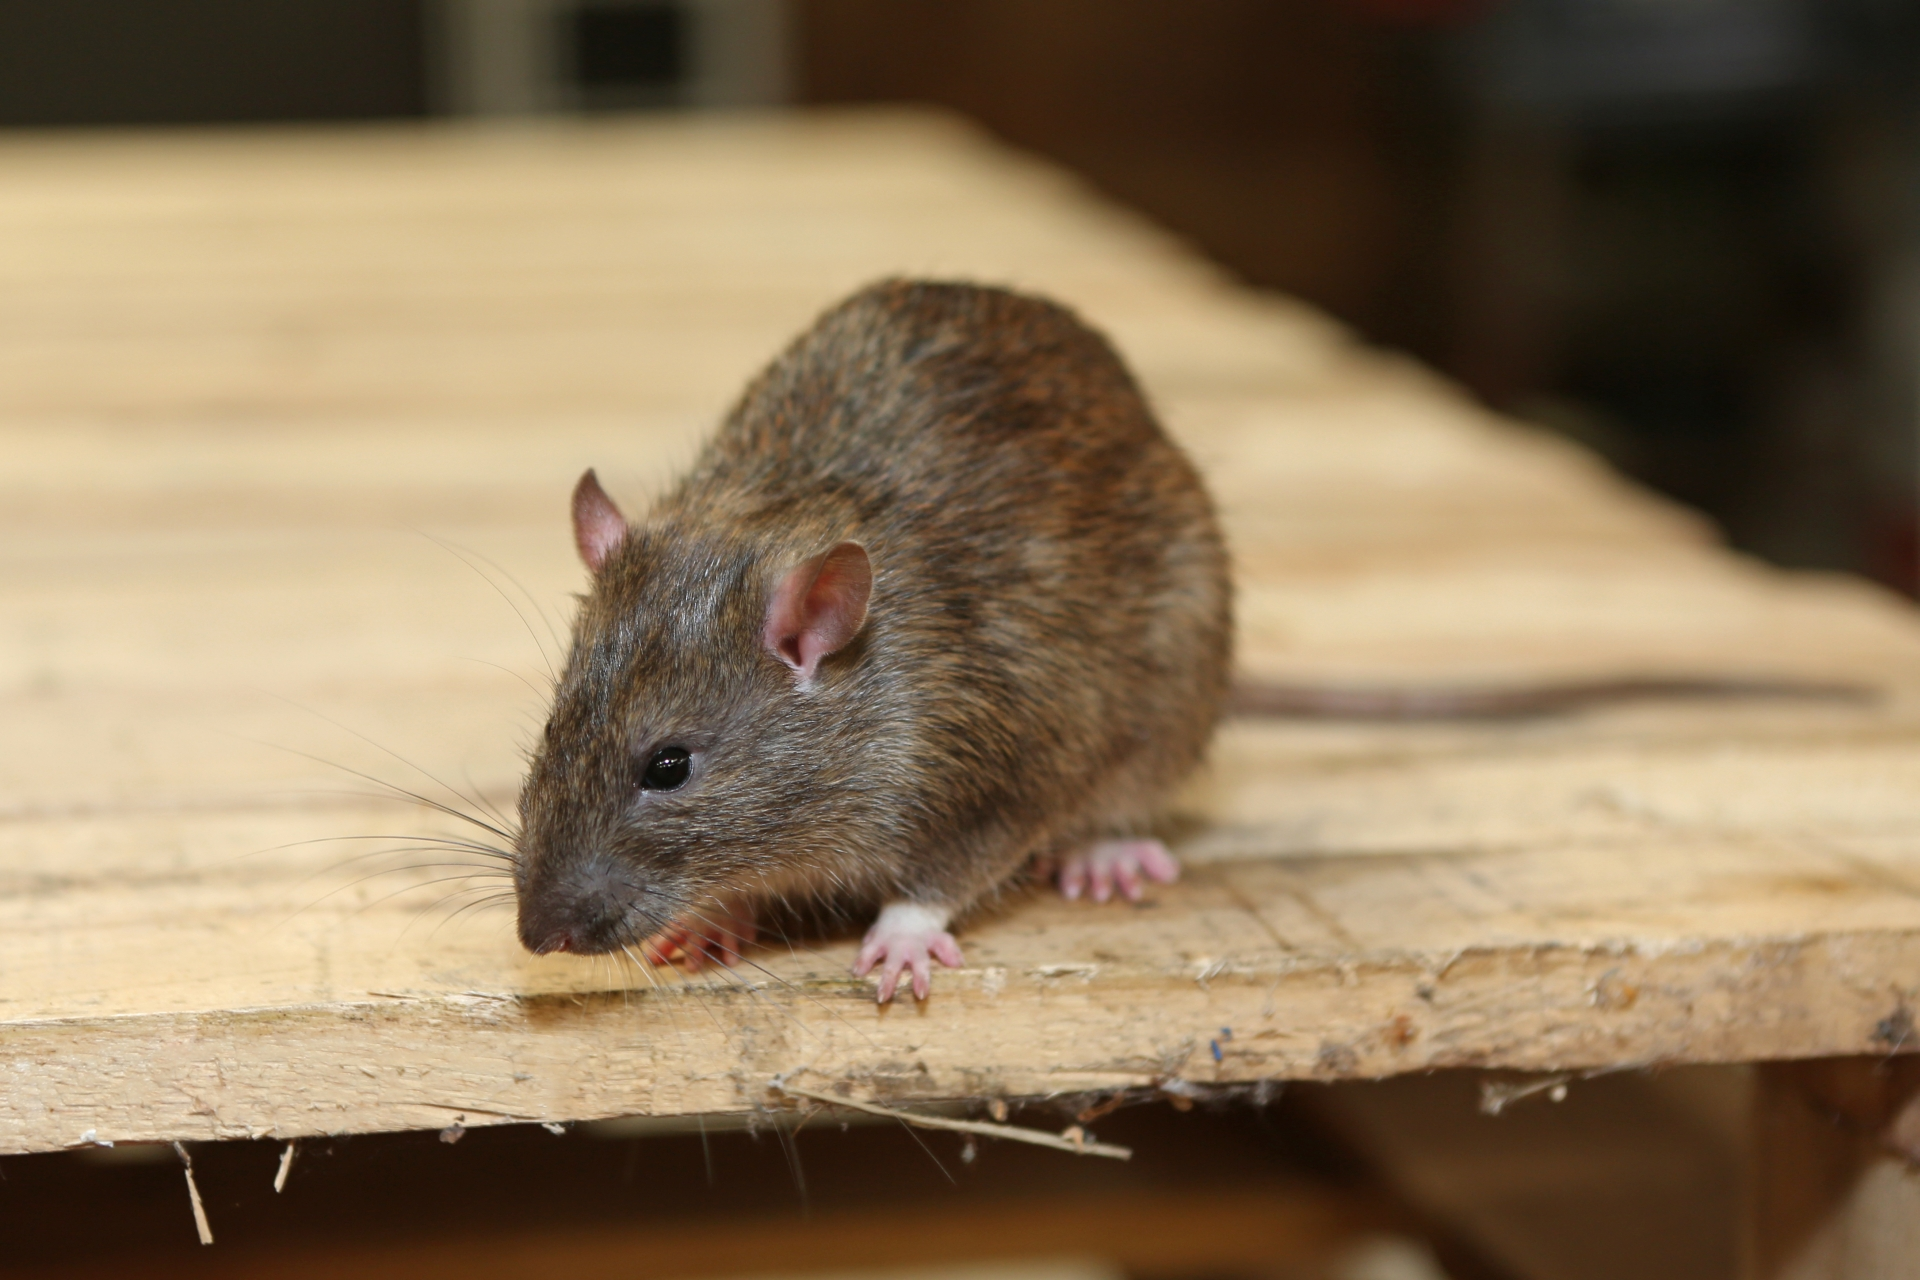 Rat Control, Pest Control in Stanmore, Queensbury, HA7. Call Now 020 8166 9746